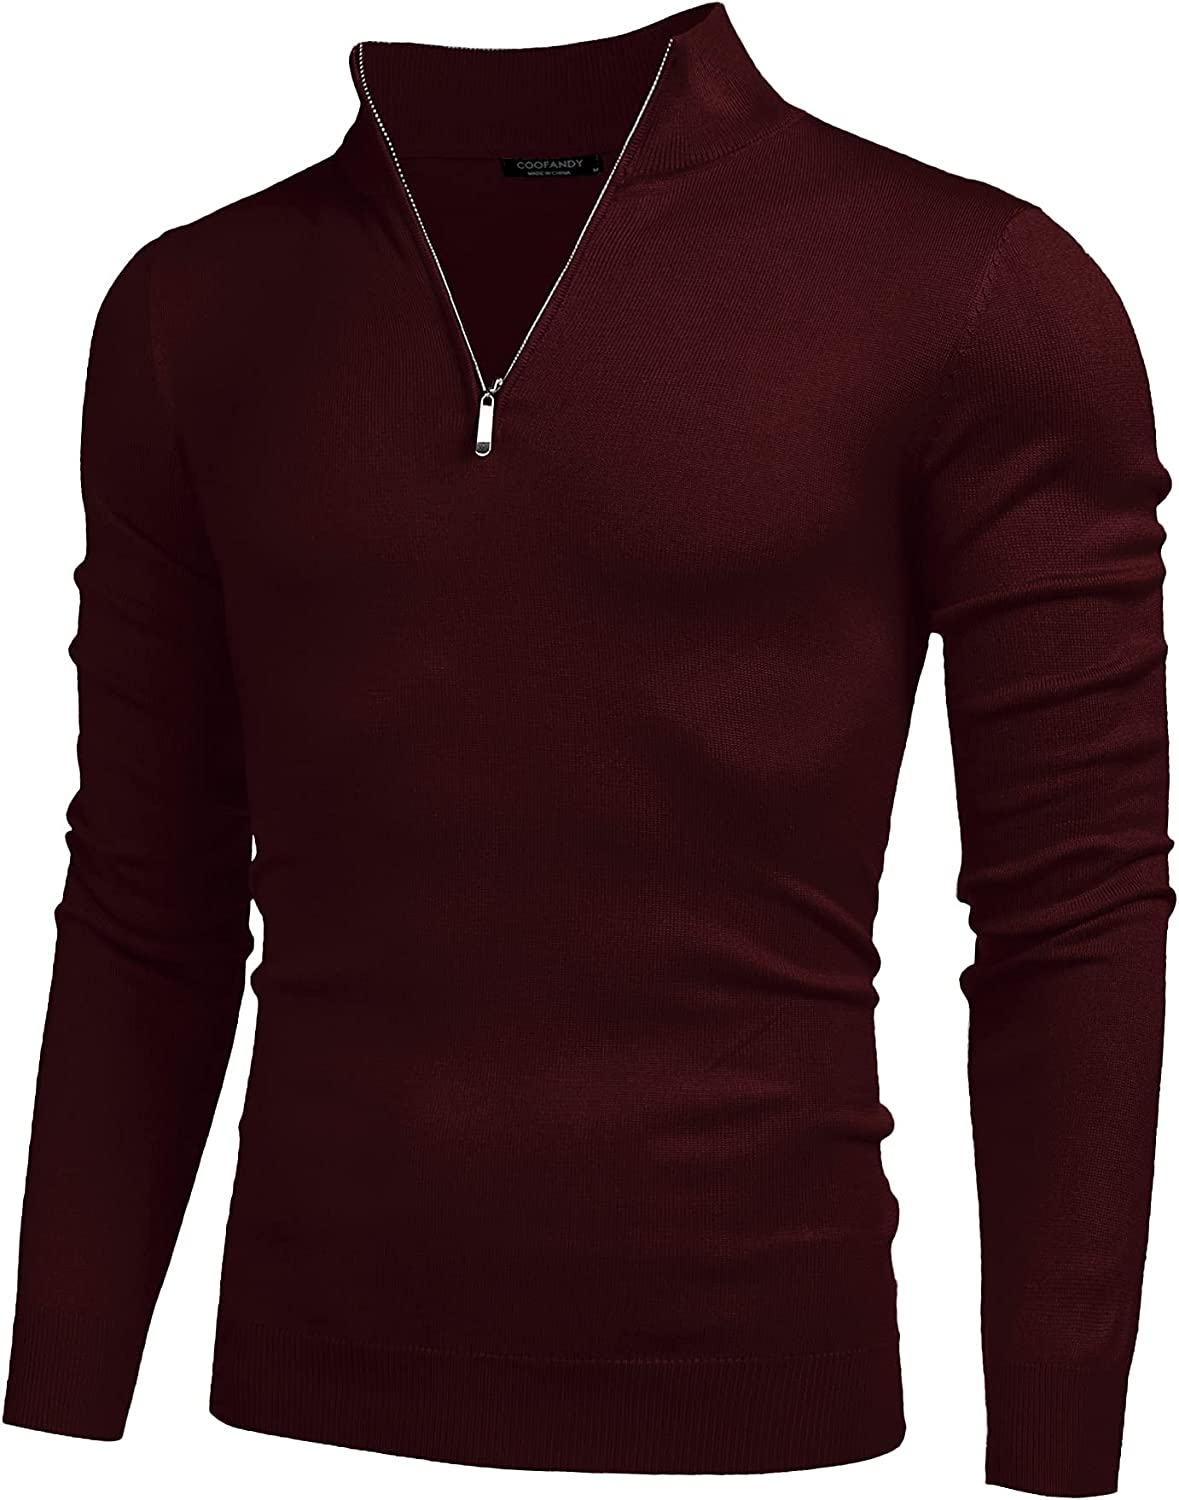 COOFANDY Men's Quarter Zip Up Sweaters Slim Fit Lightweight Mock Neck Pullover Casual Polo Sweater